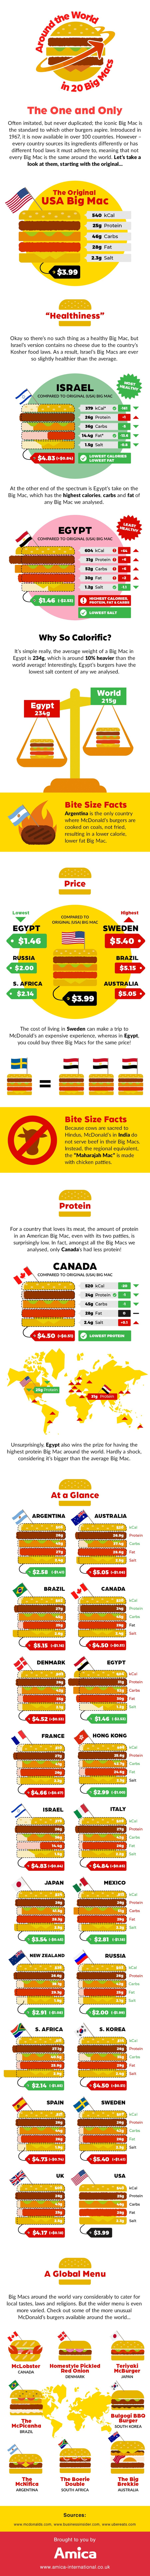 How Much is a Big Mac Around the World (Infographic)